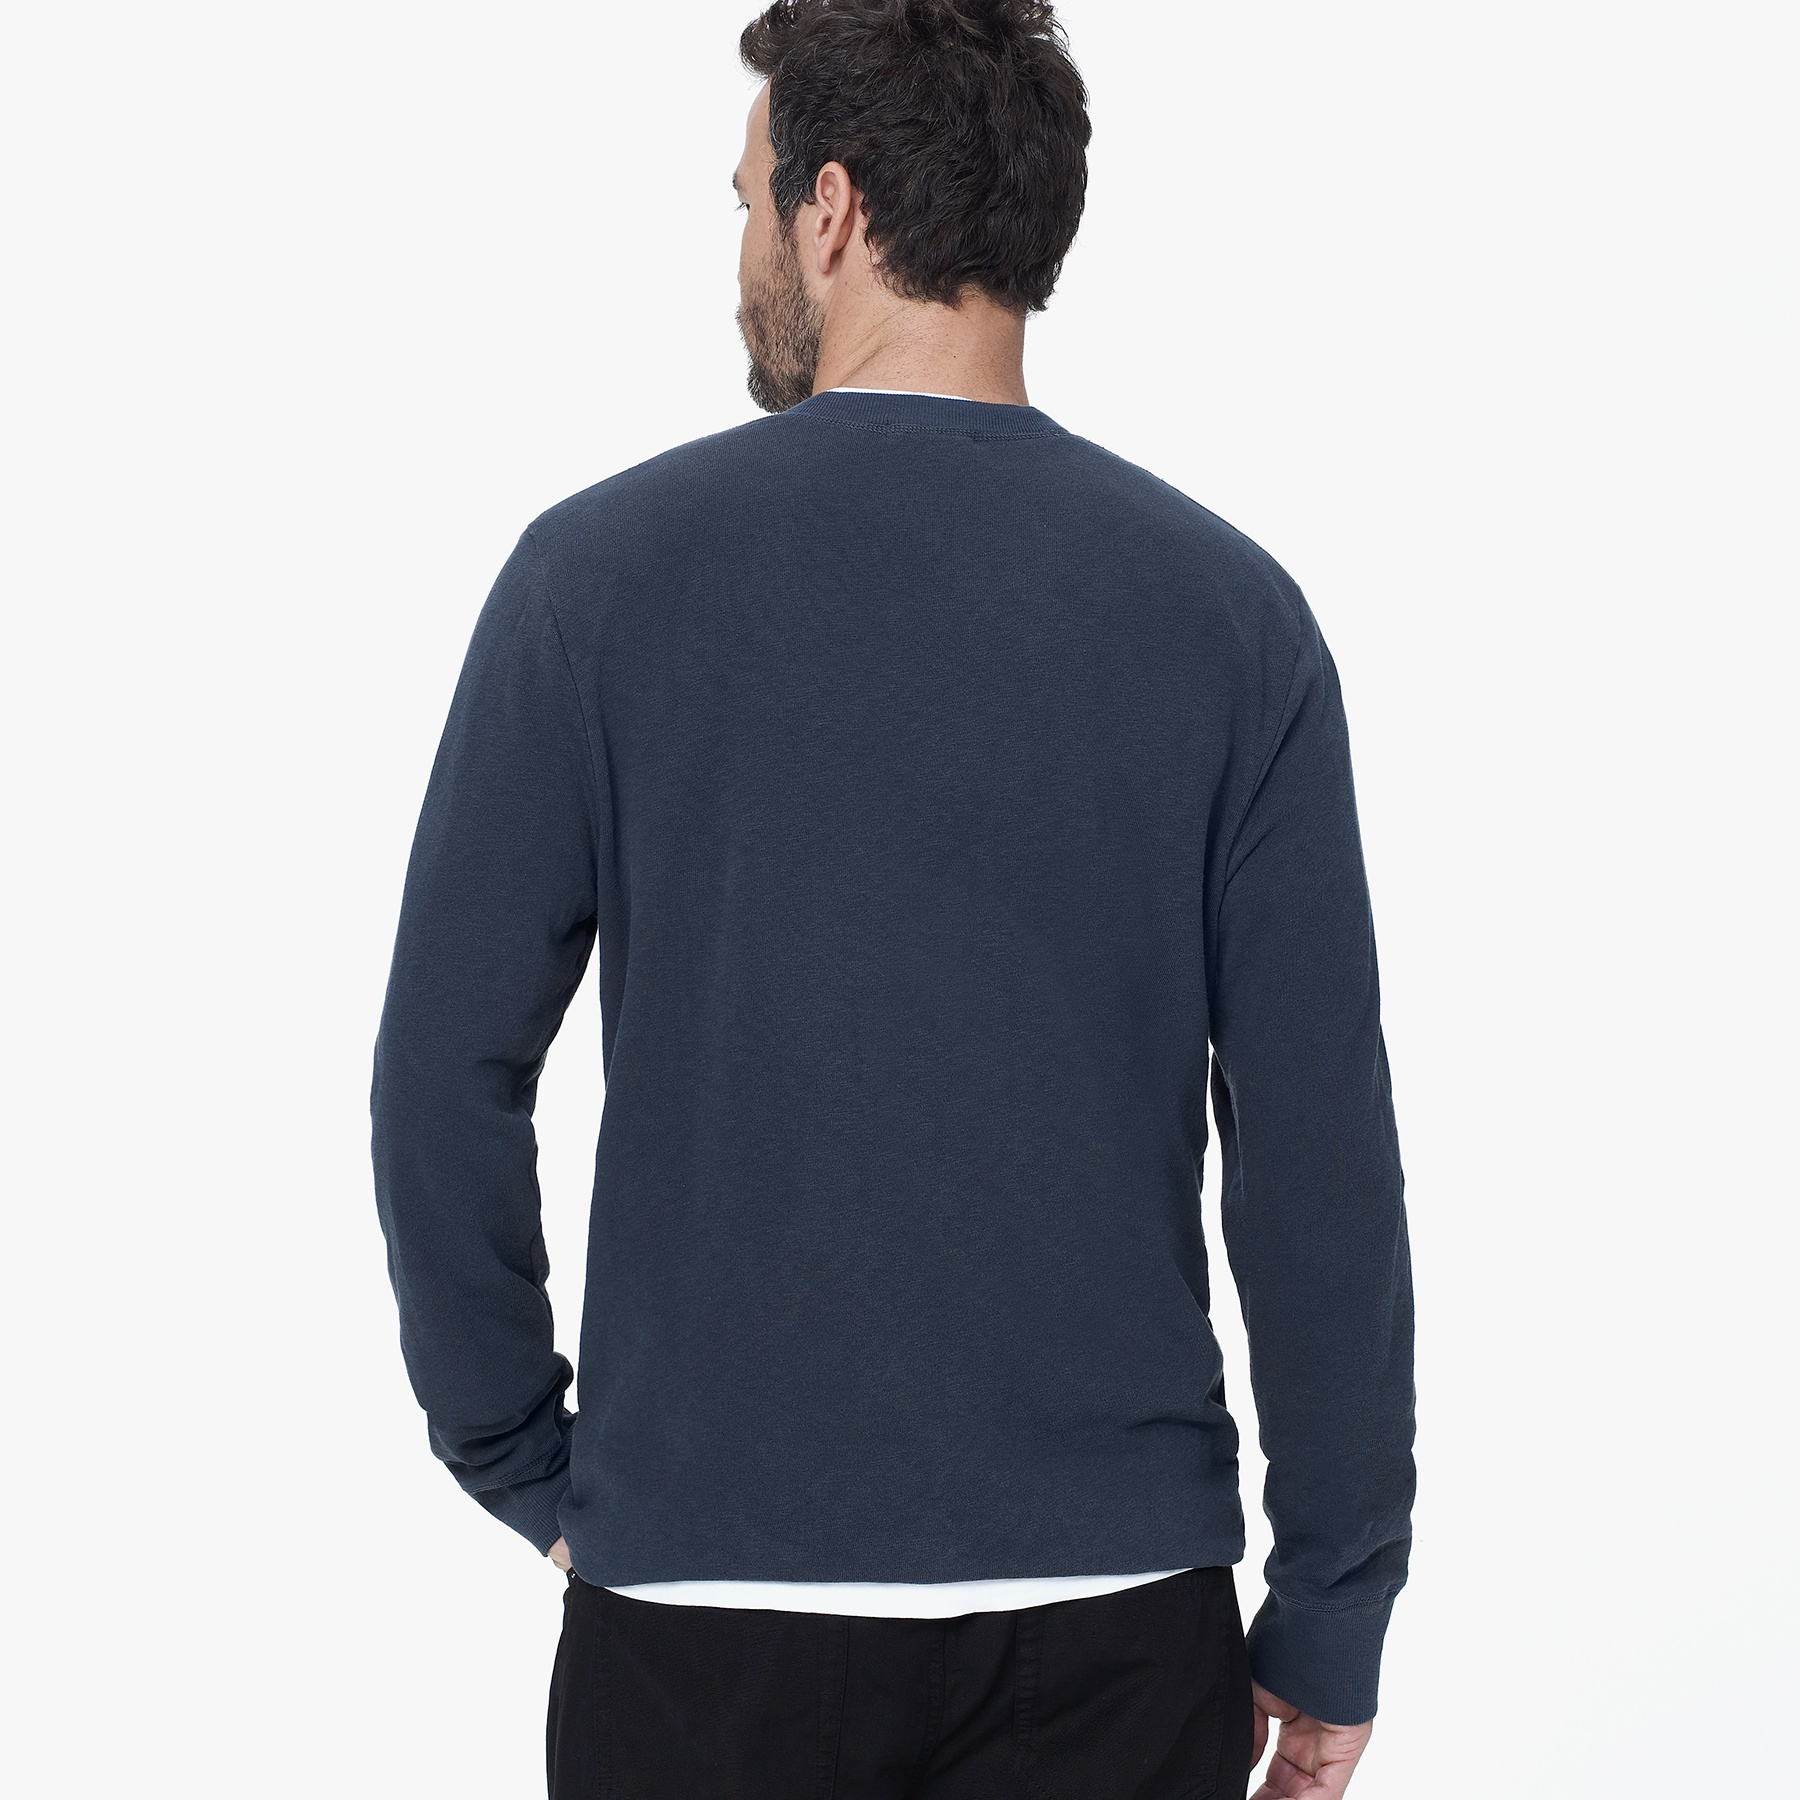 James perse vintage fleece henley in blue for men lyst for James perse henley shirt